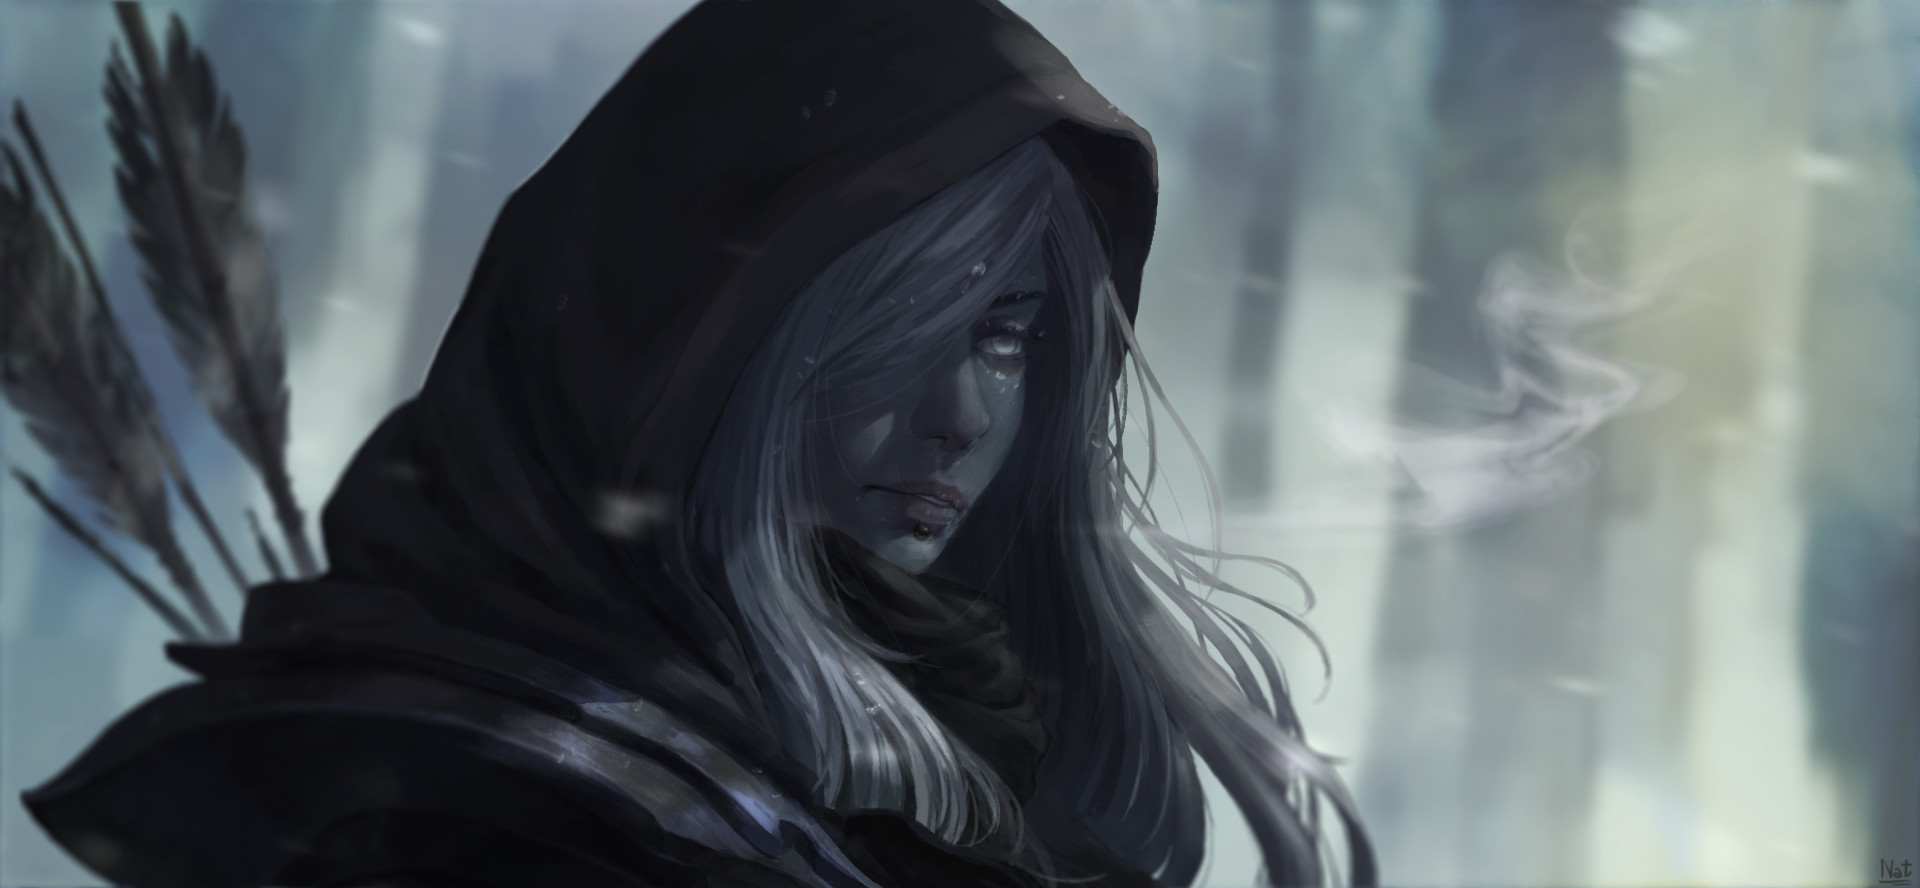 https://cdna.artstation.com/p/assets/images/images/004/596/904/large/nat-vitchayed-drow-ranger.jpg?1484854371